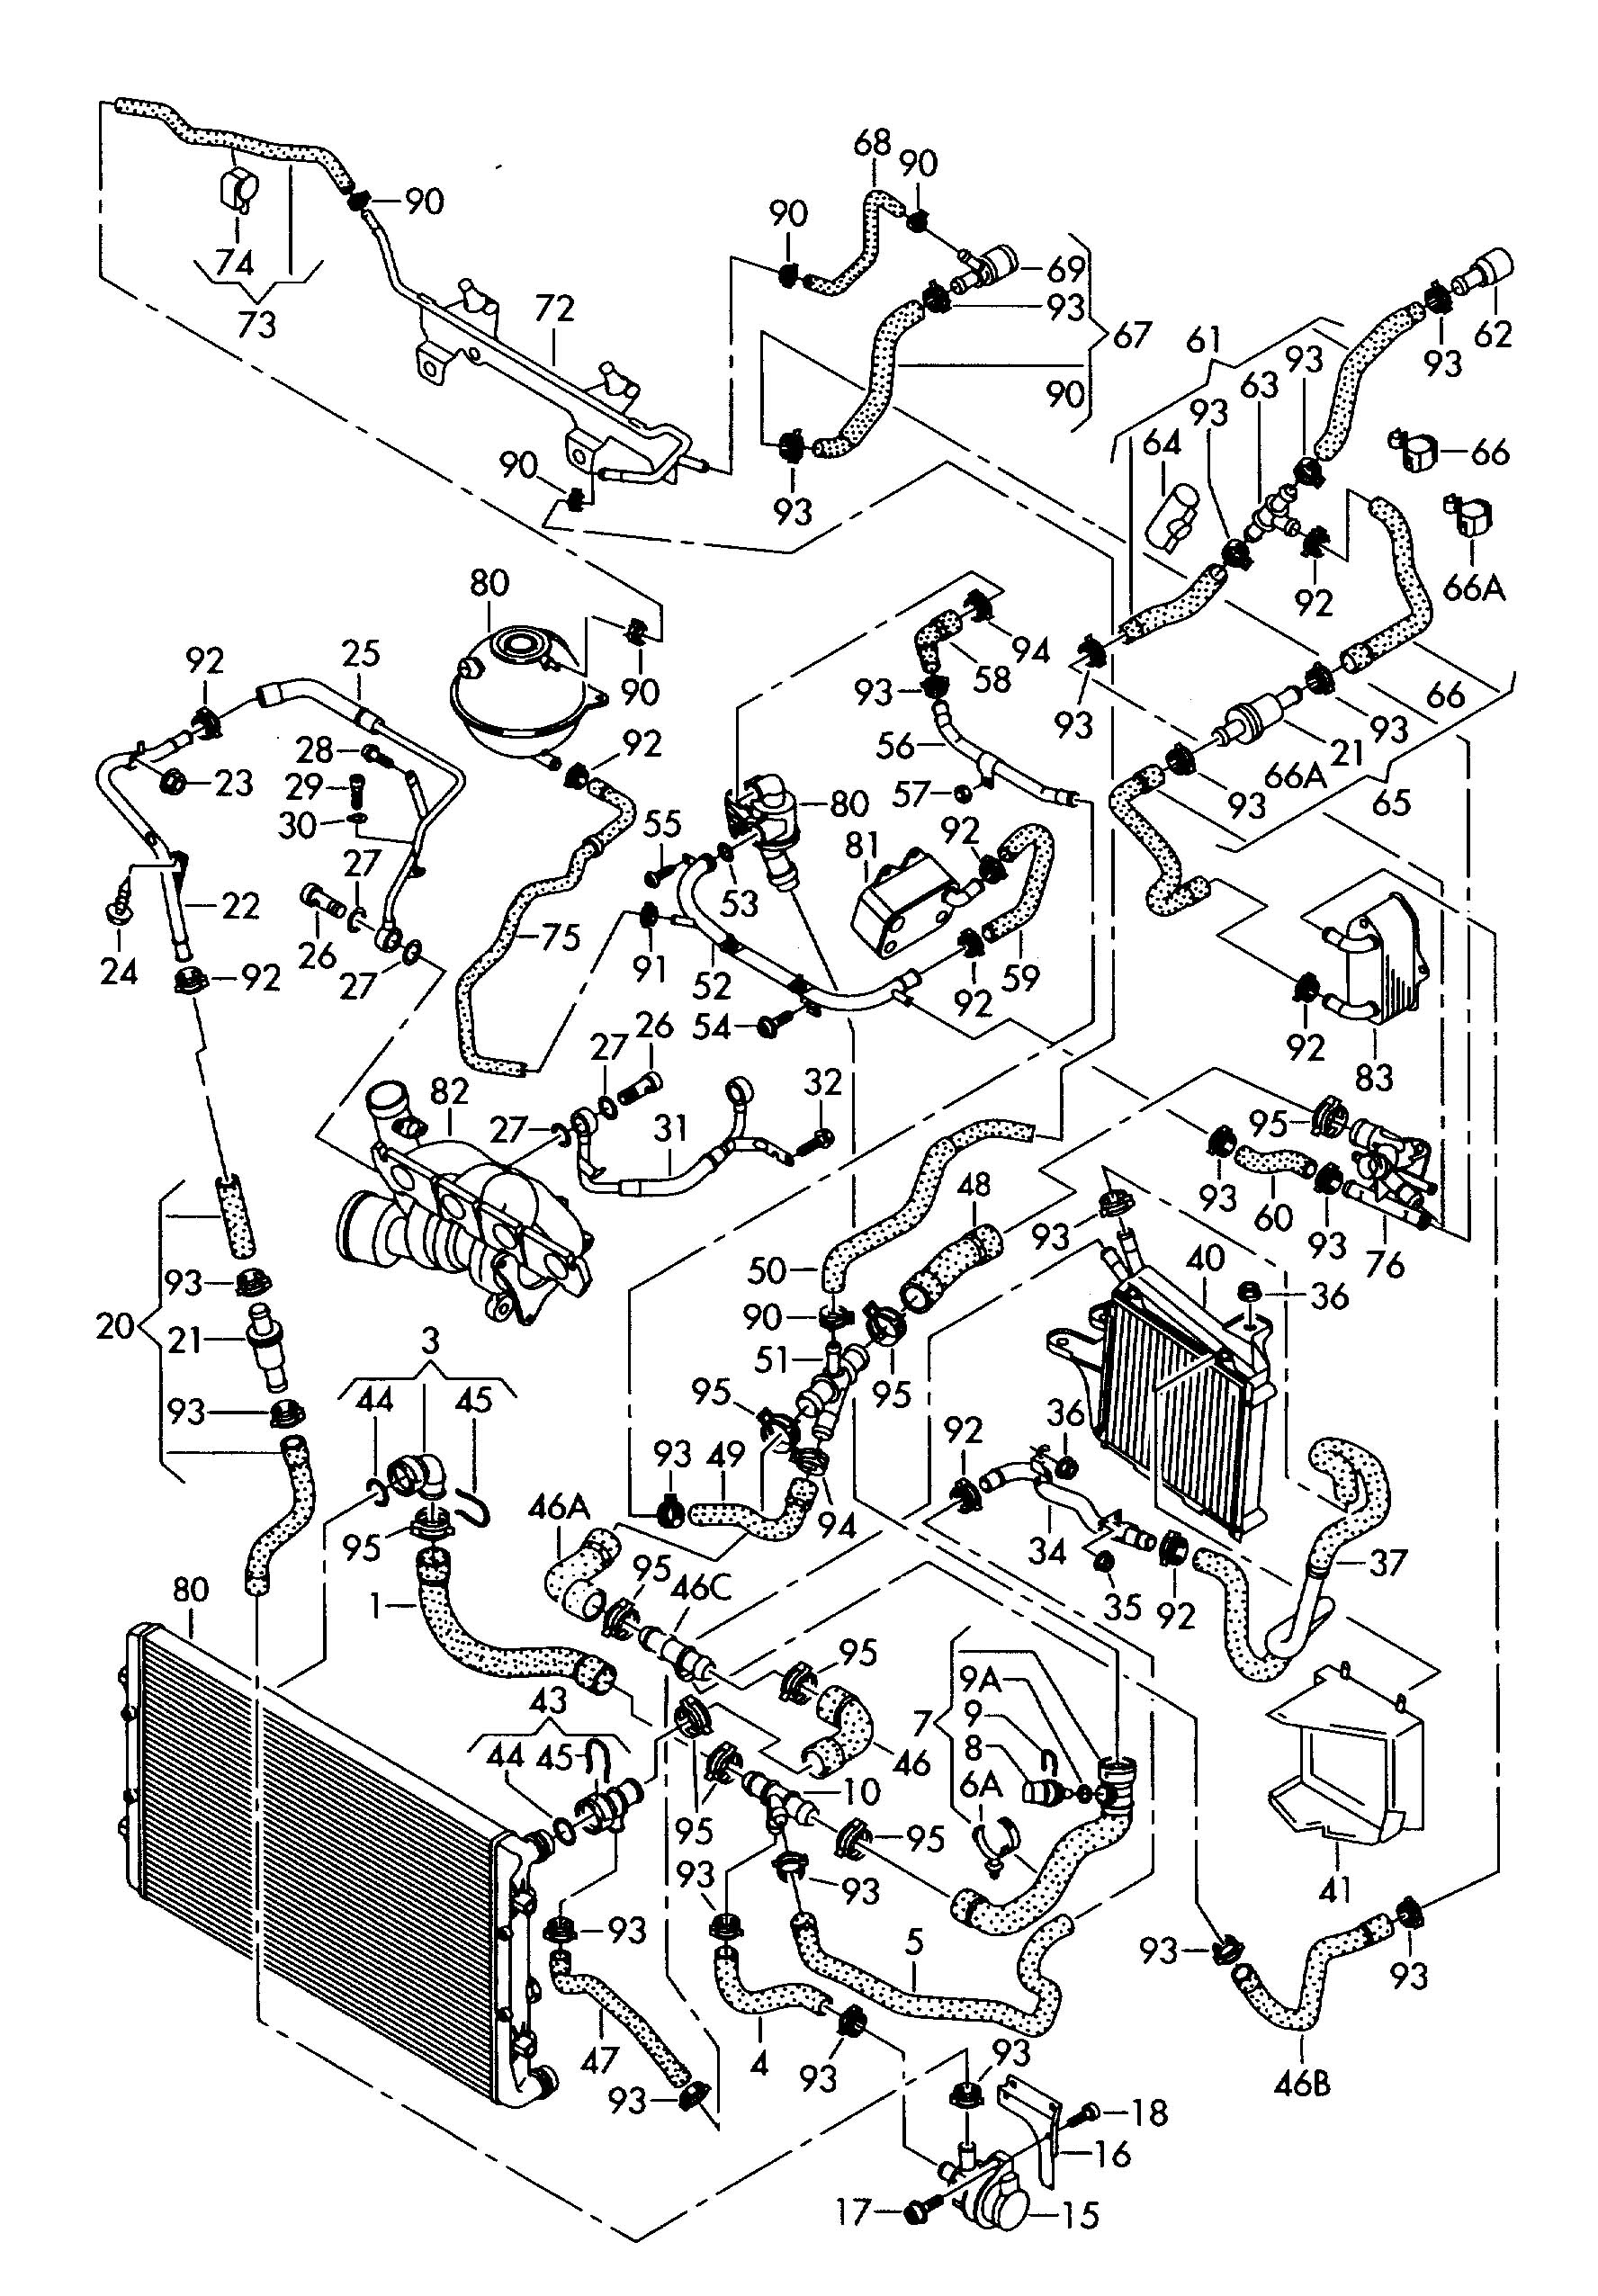 hight resolution of vw 1 8t engine parts diagram wiring diagrams for 2000 vw beetle 1 8 turbo engine diagram